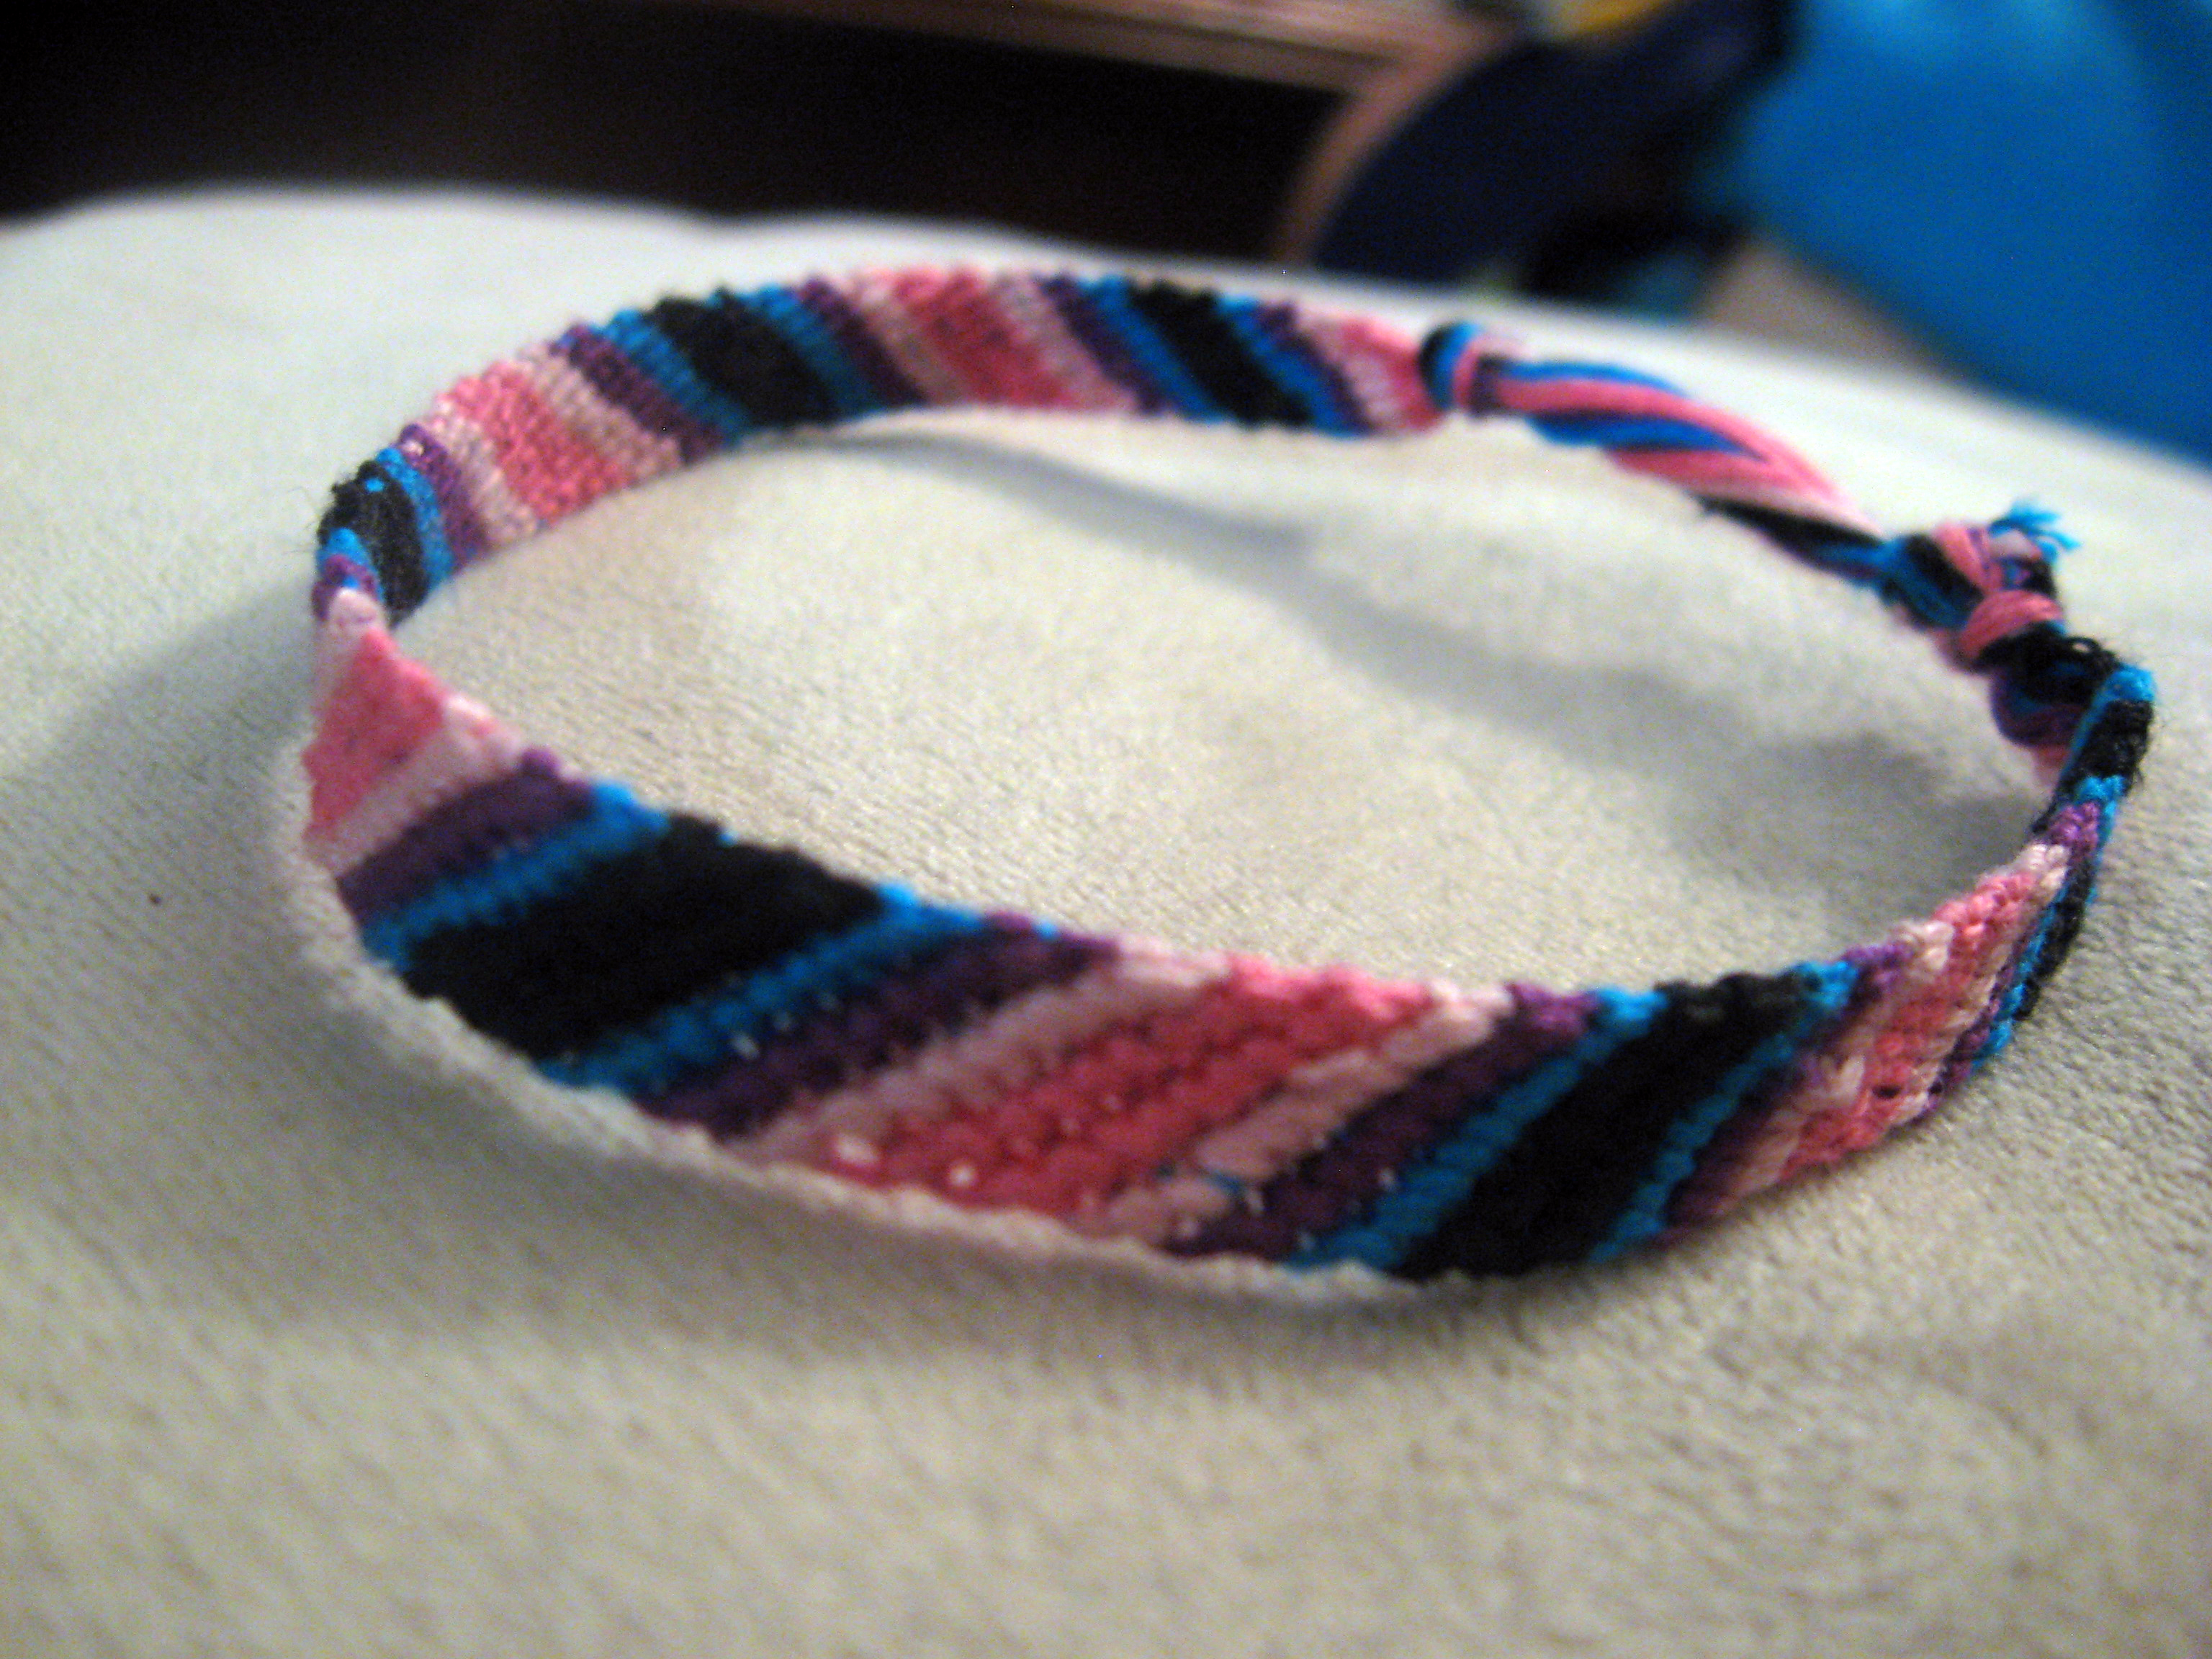 floss diy easy embroidery fishtail bracelet tutorial from caymancode friendship